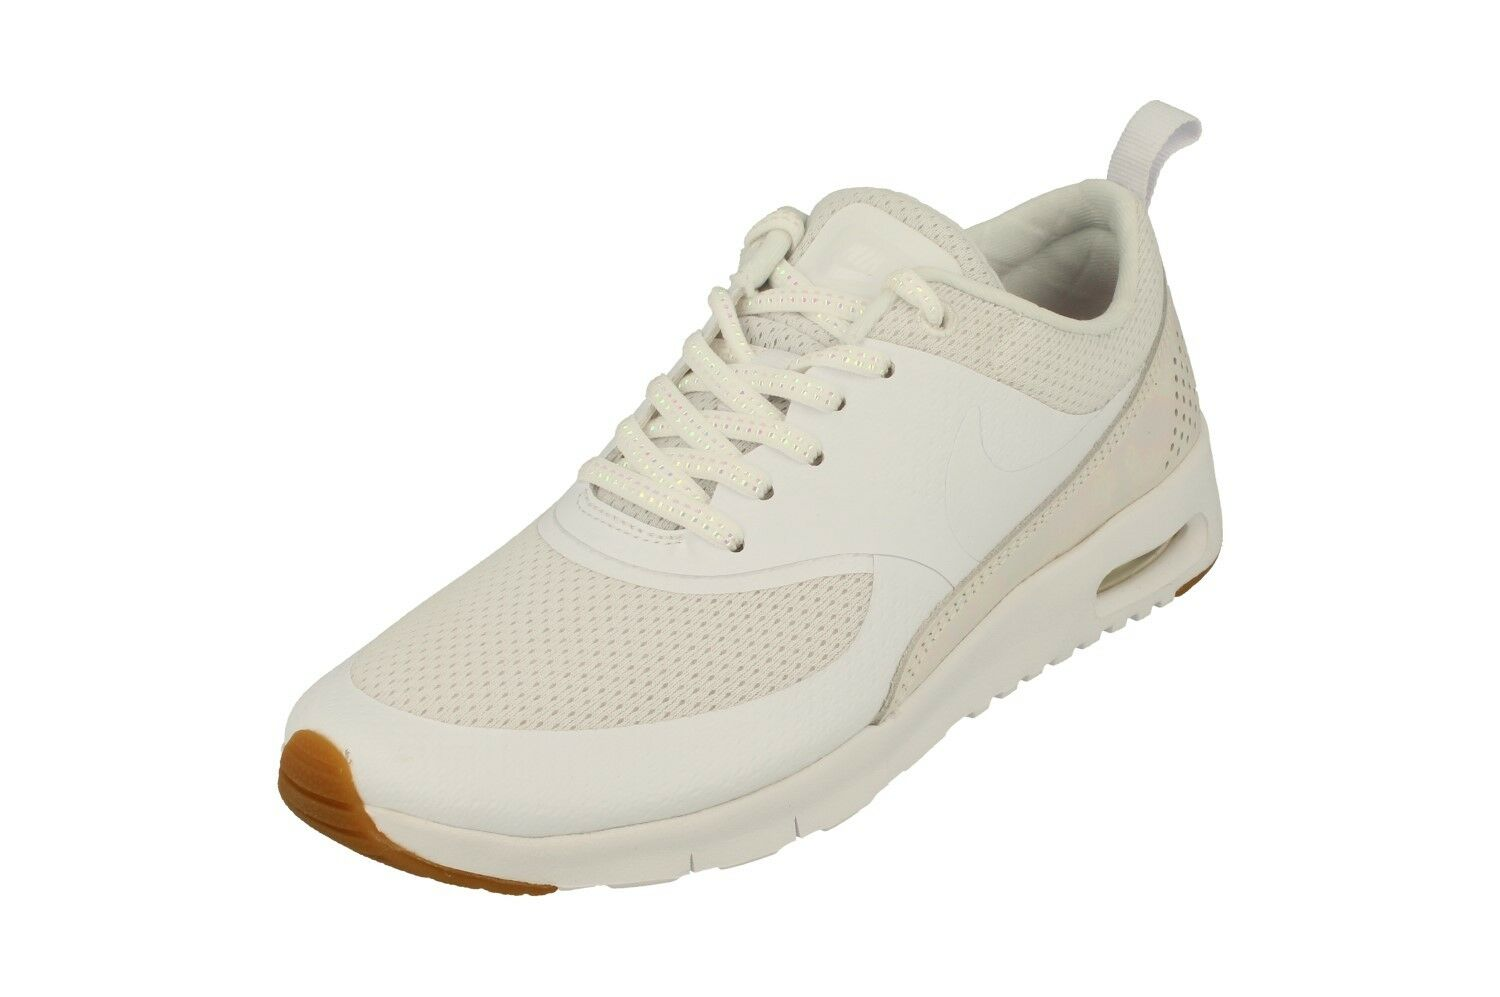 Nike Air Max Thea 820244 Se GS Running Trainers 820244 Thea Sneakers Schuhes 101 0e47b5